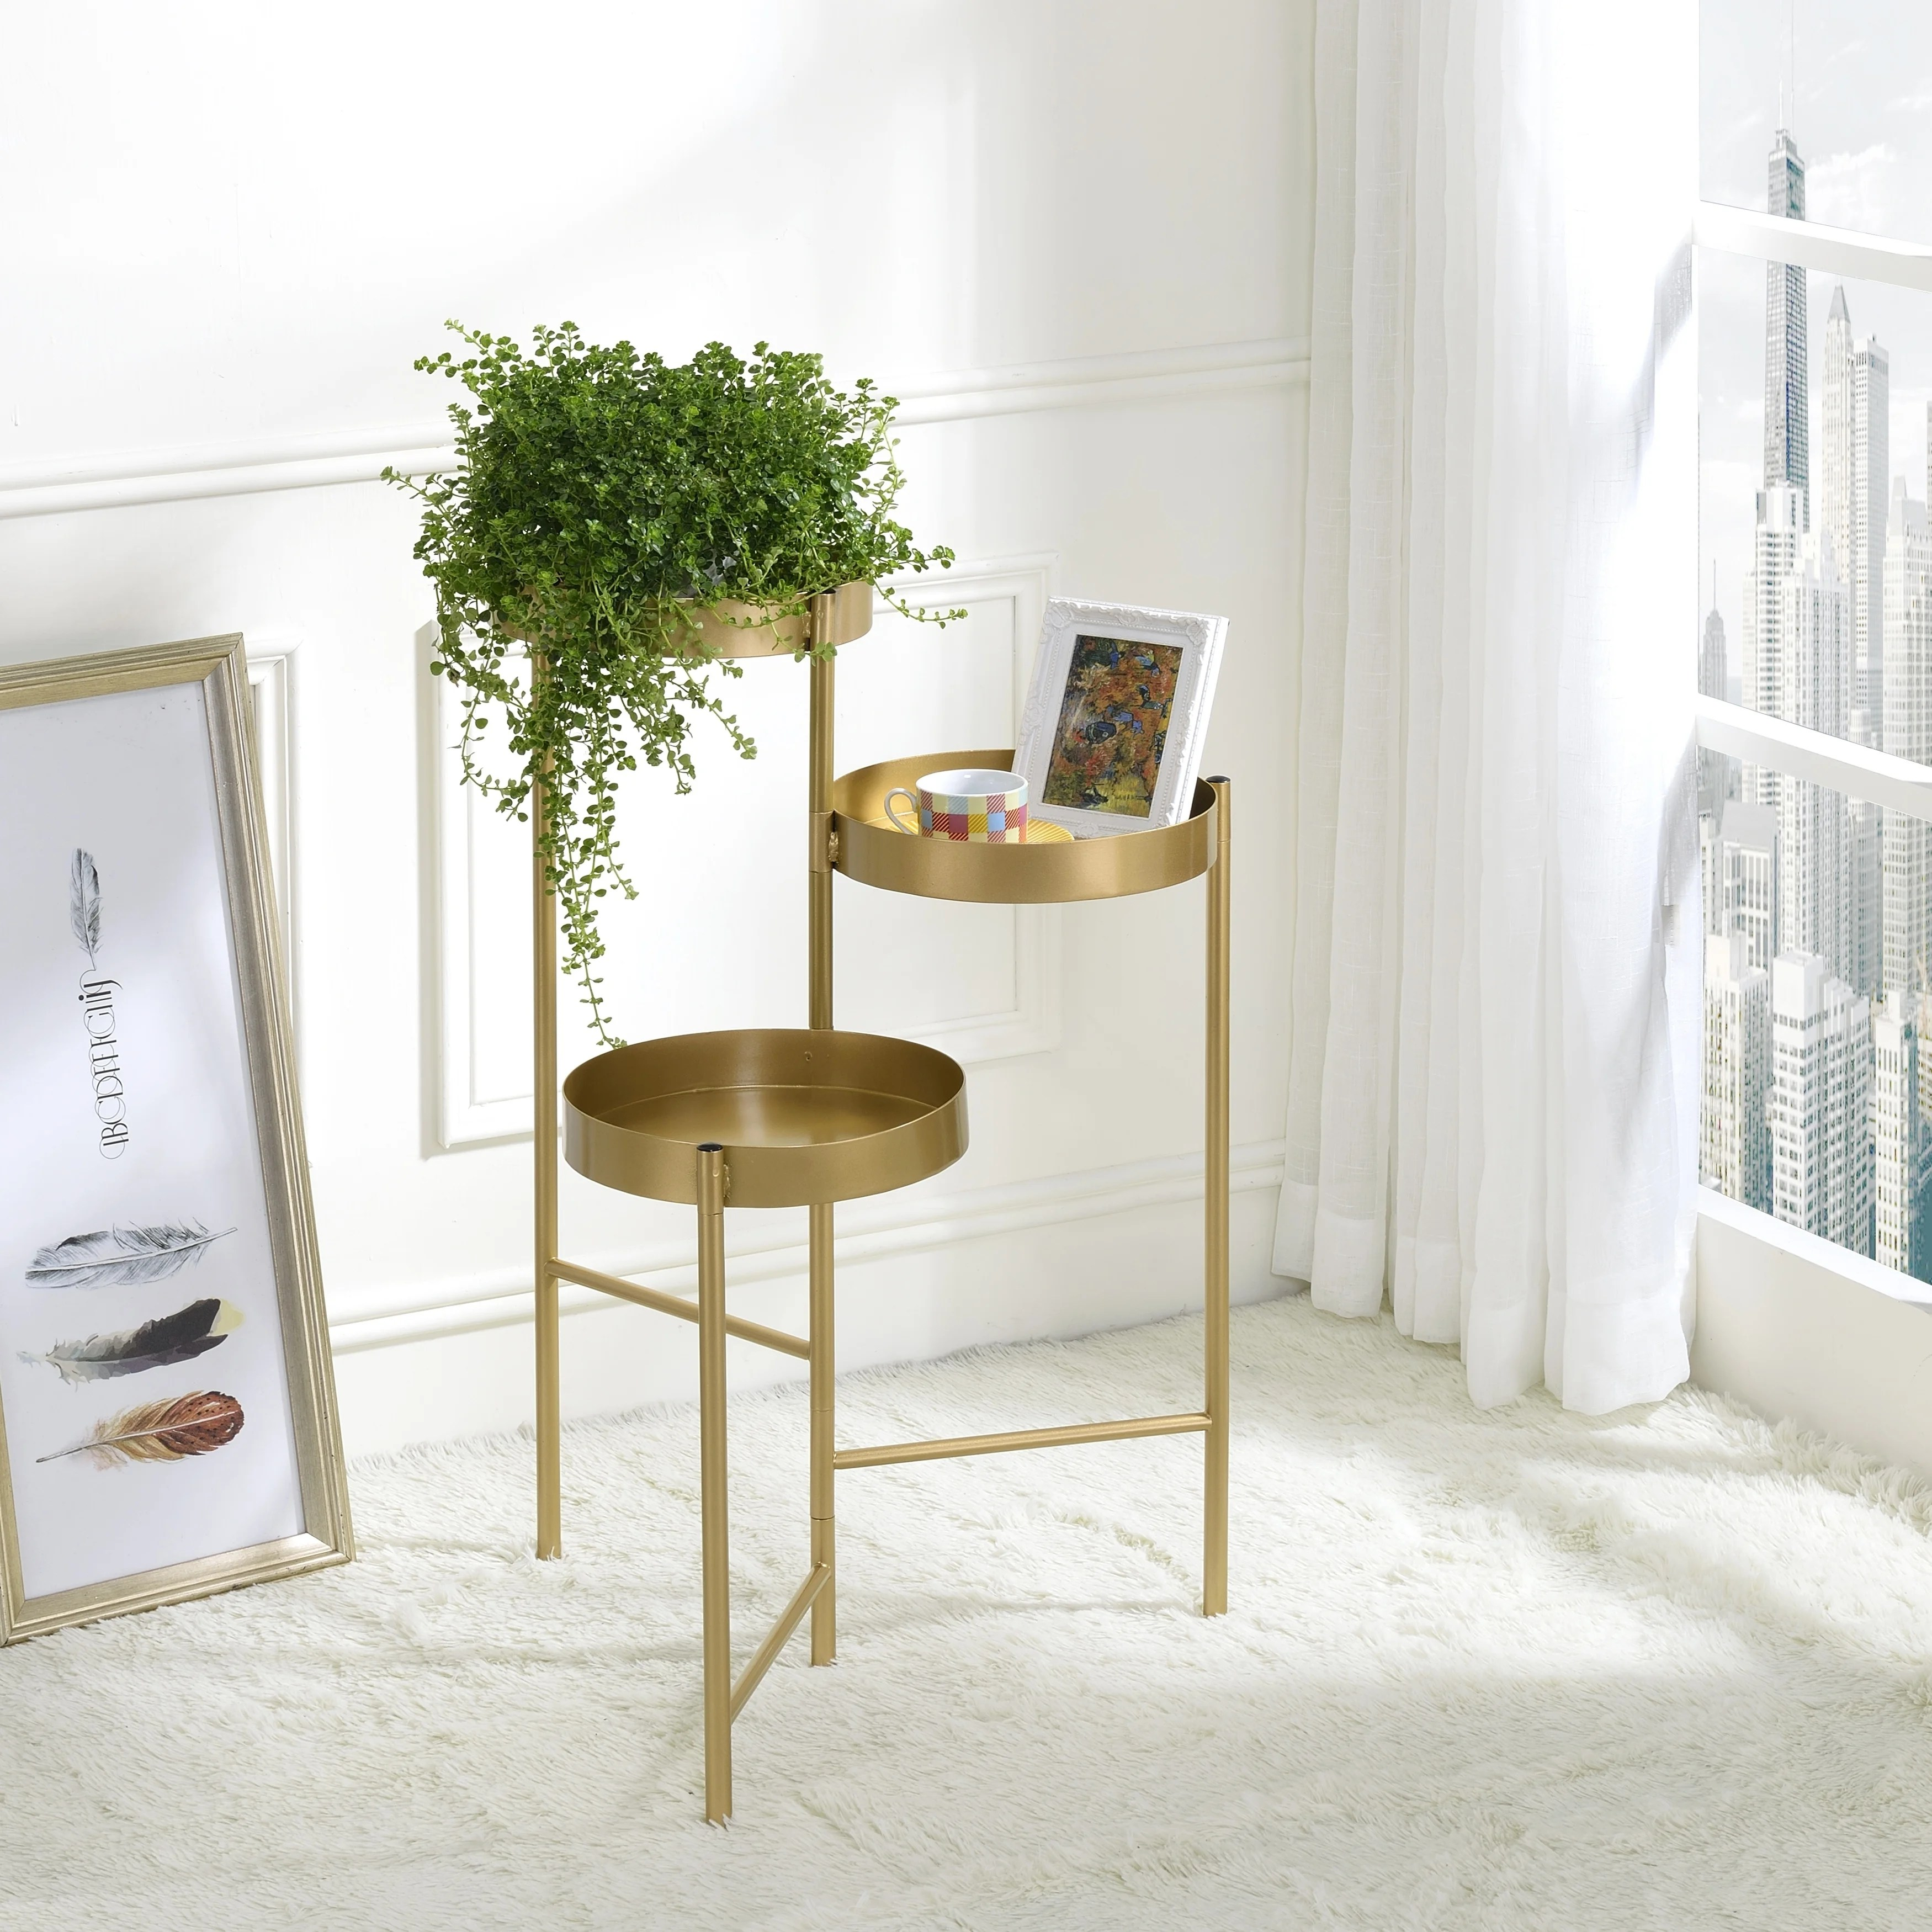 Shop Furniture Of America Caleb Modern Gold 3 Tier Indoor Plant Stand On Sale Overstock 30733563